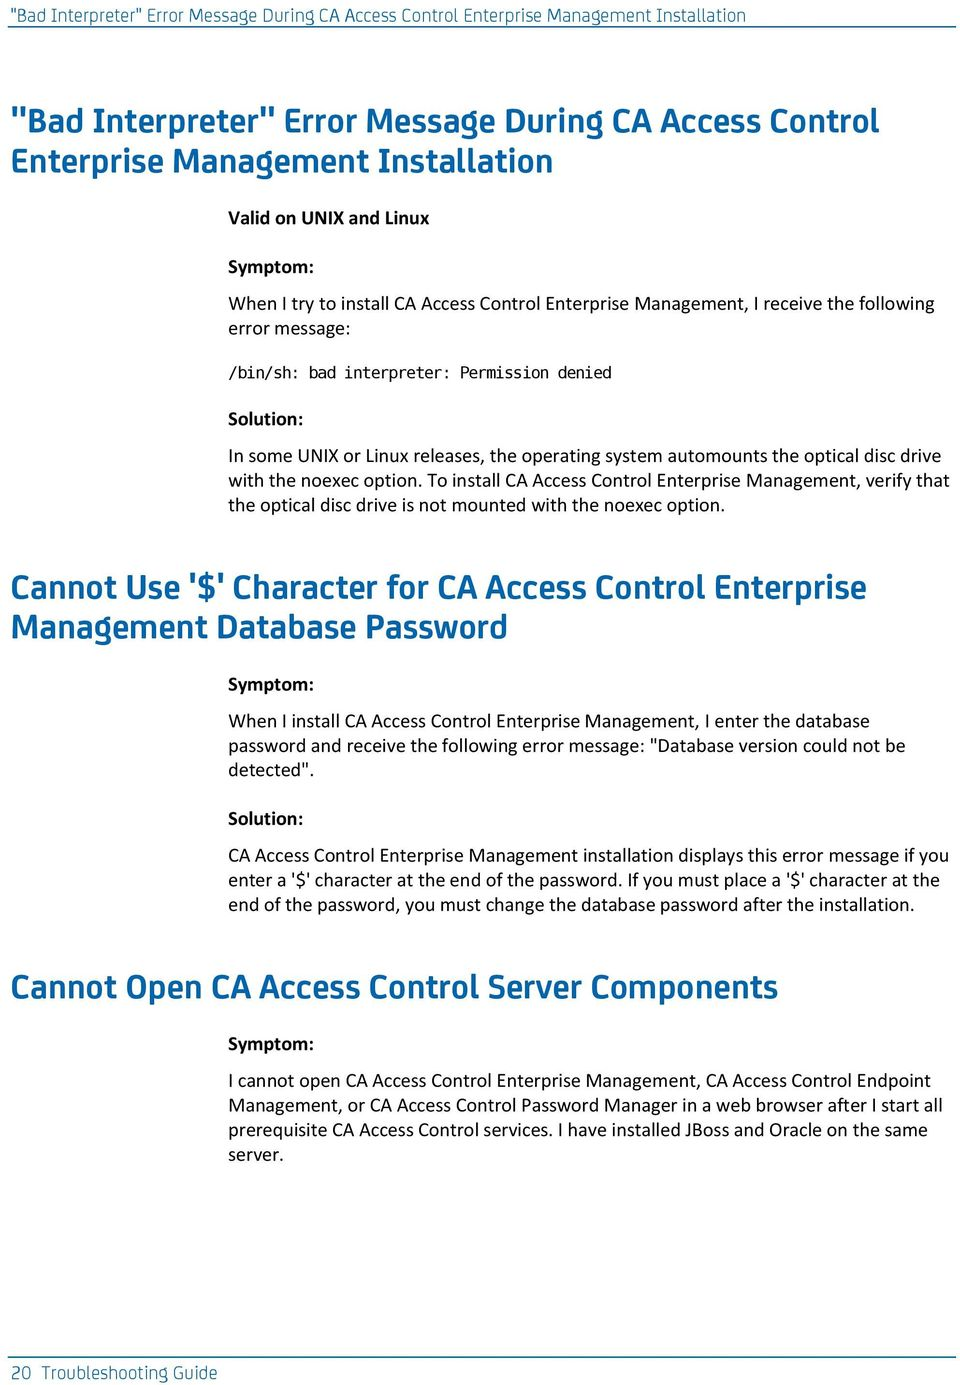 CA Access Control  Troubleshooting Guide PDF